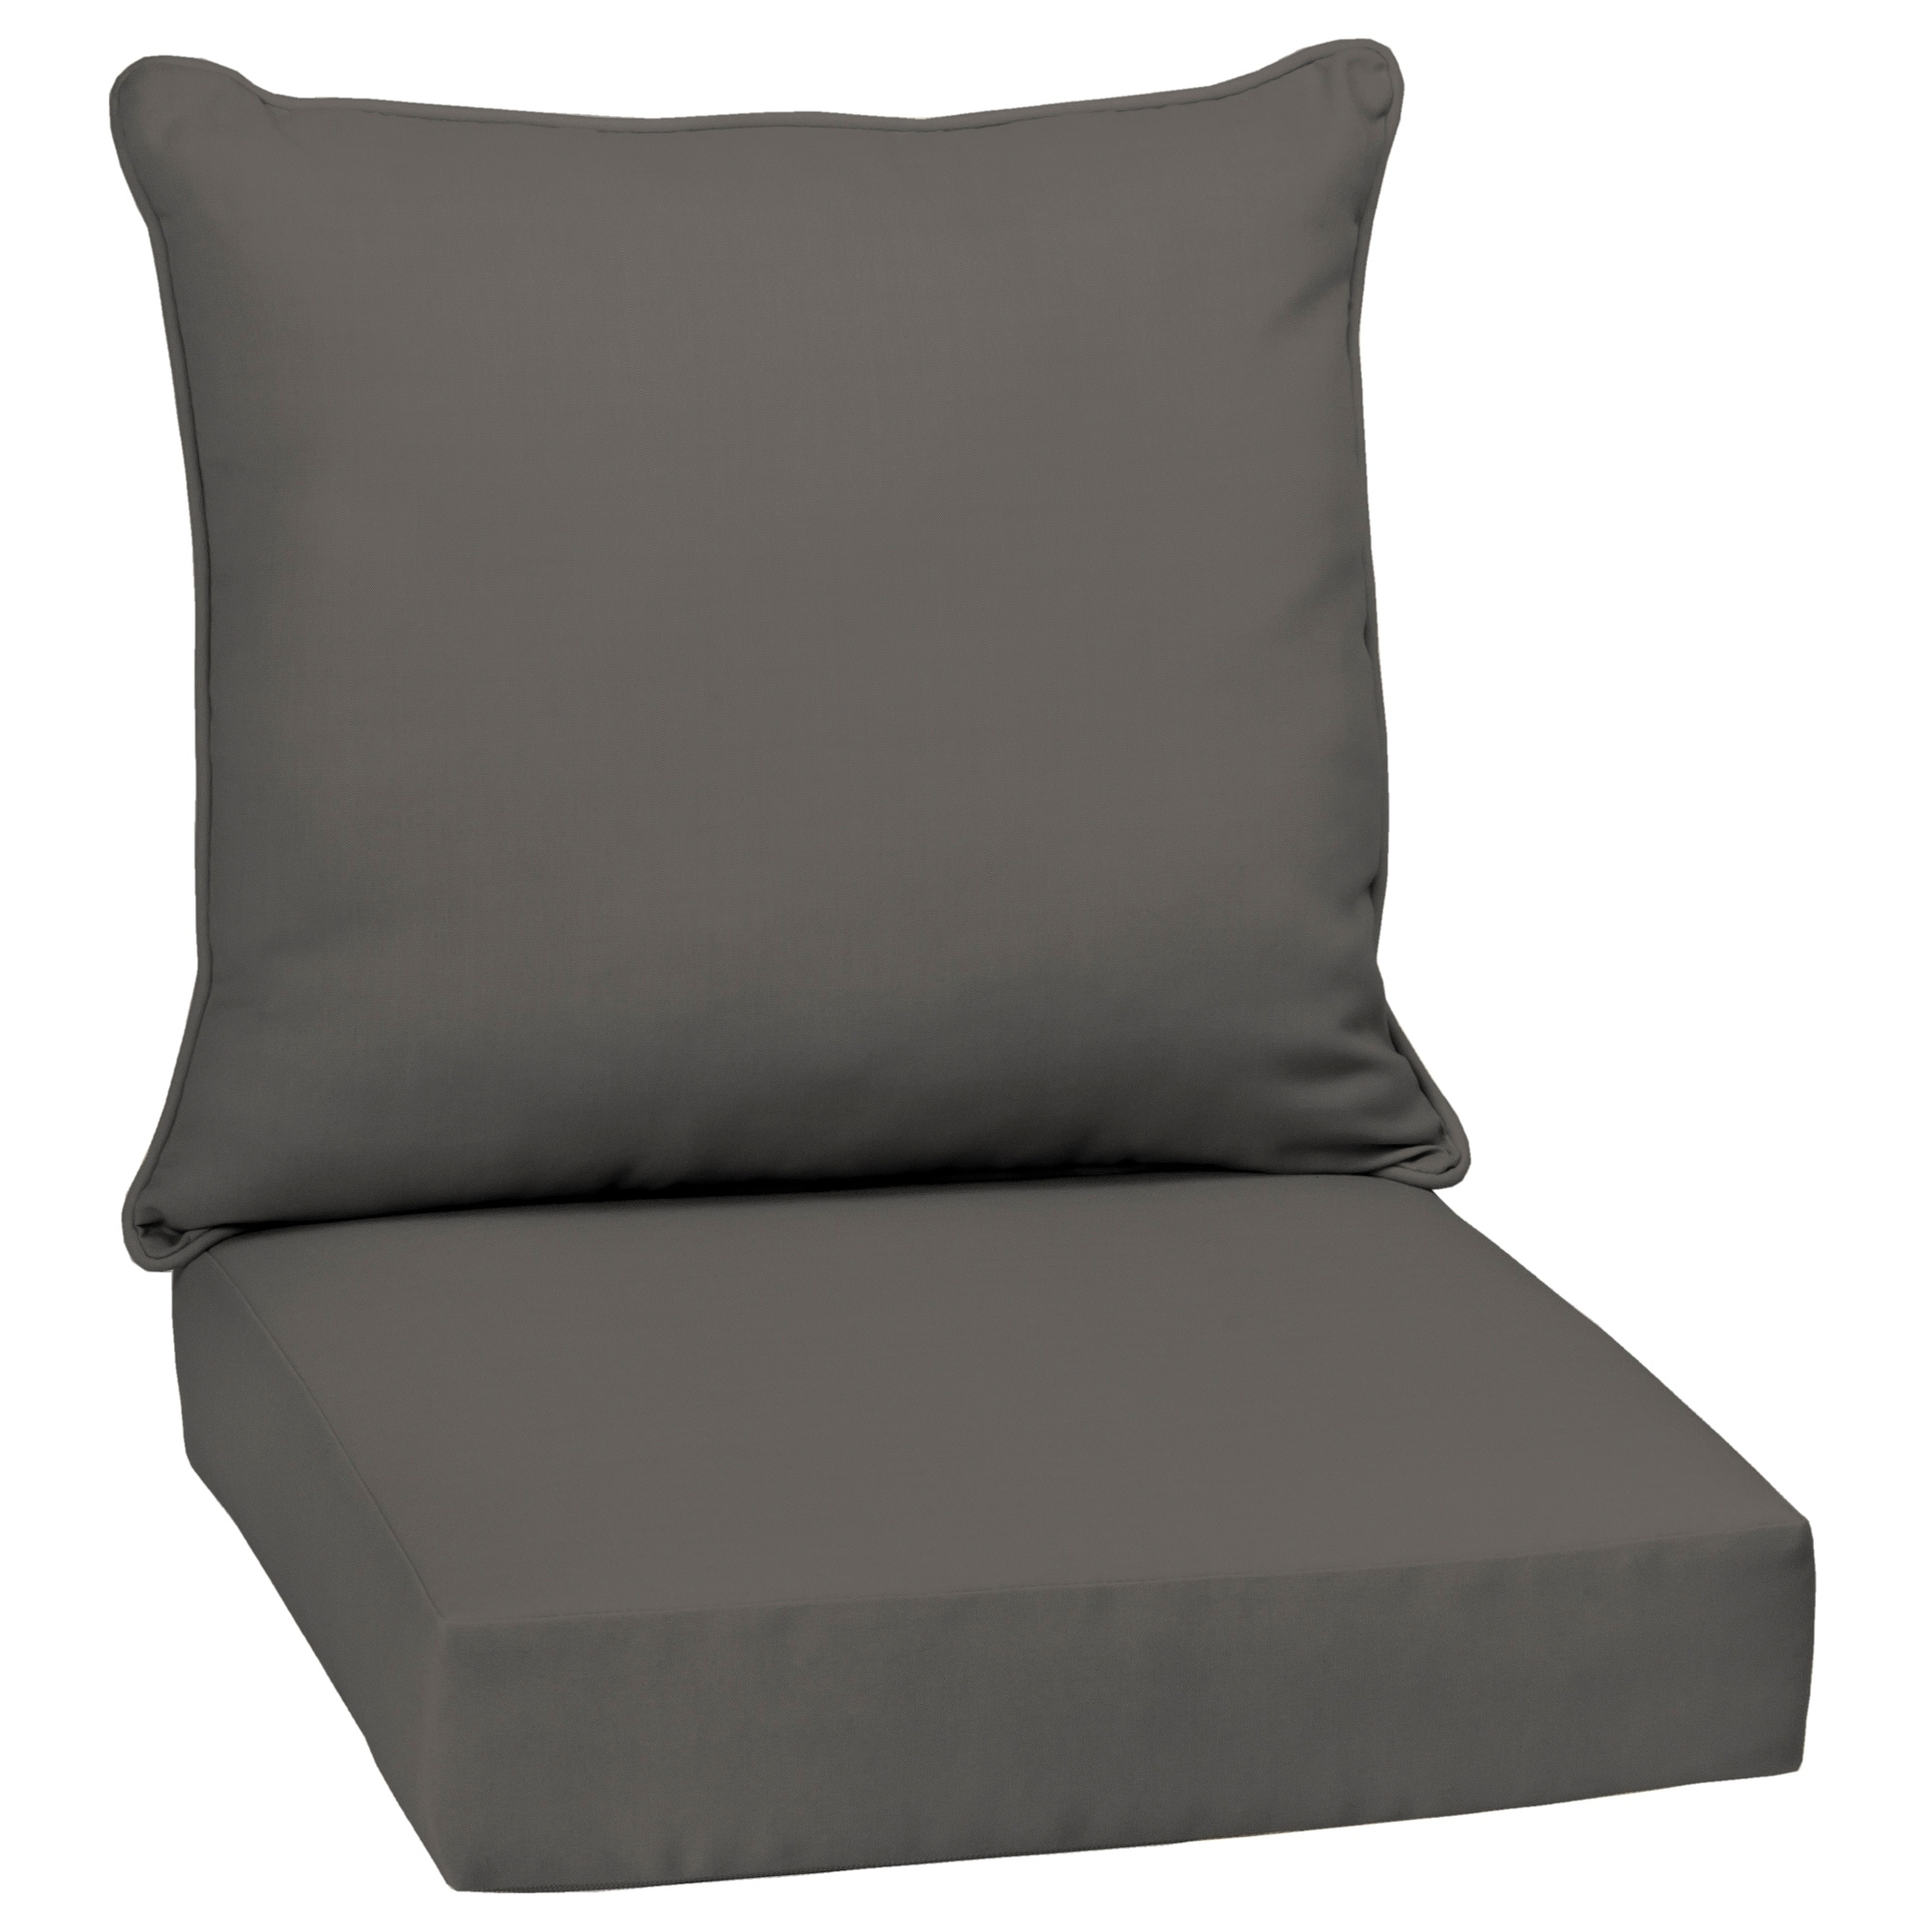 Buy Outdoor Cushions U0026 Pillows Online At Overstock.com | Our Best Patio  Furniture Deals